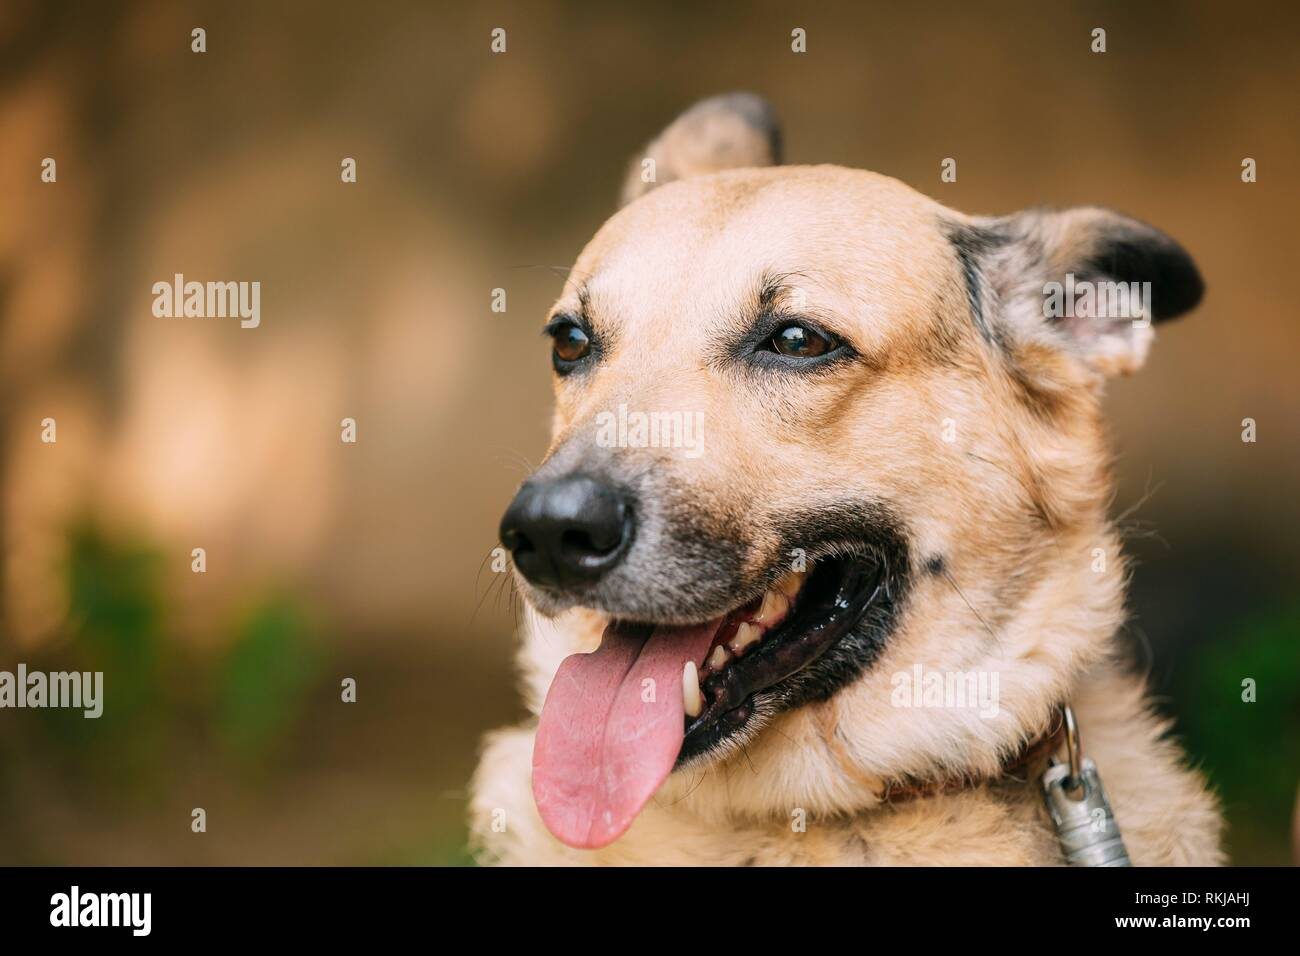 Close Up Of Medium Size Mongrel Mixed Breed Short-Haired Yellow Adult Female Dog With Tongue In Collar On Brown Background. Stock Photo